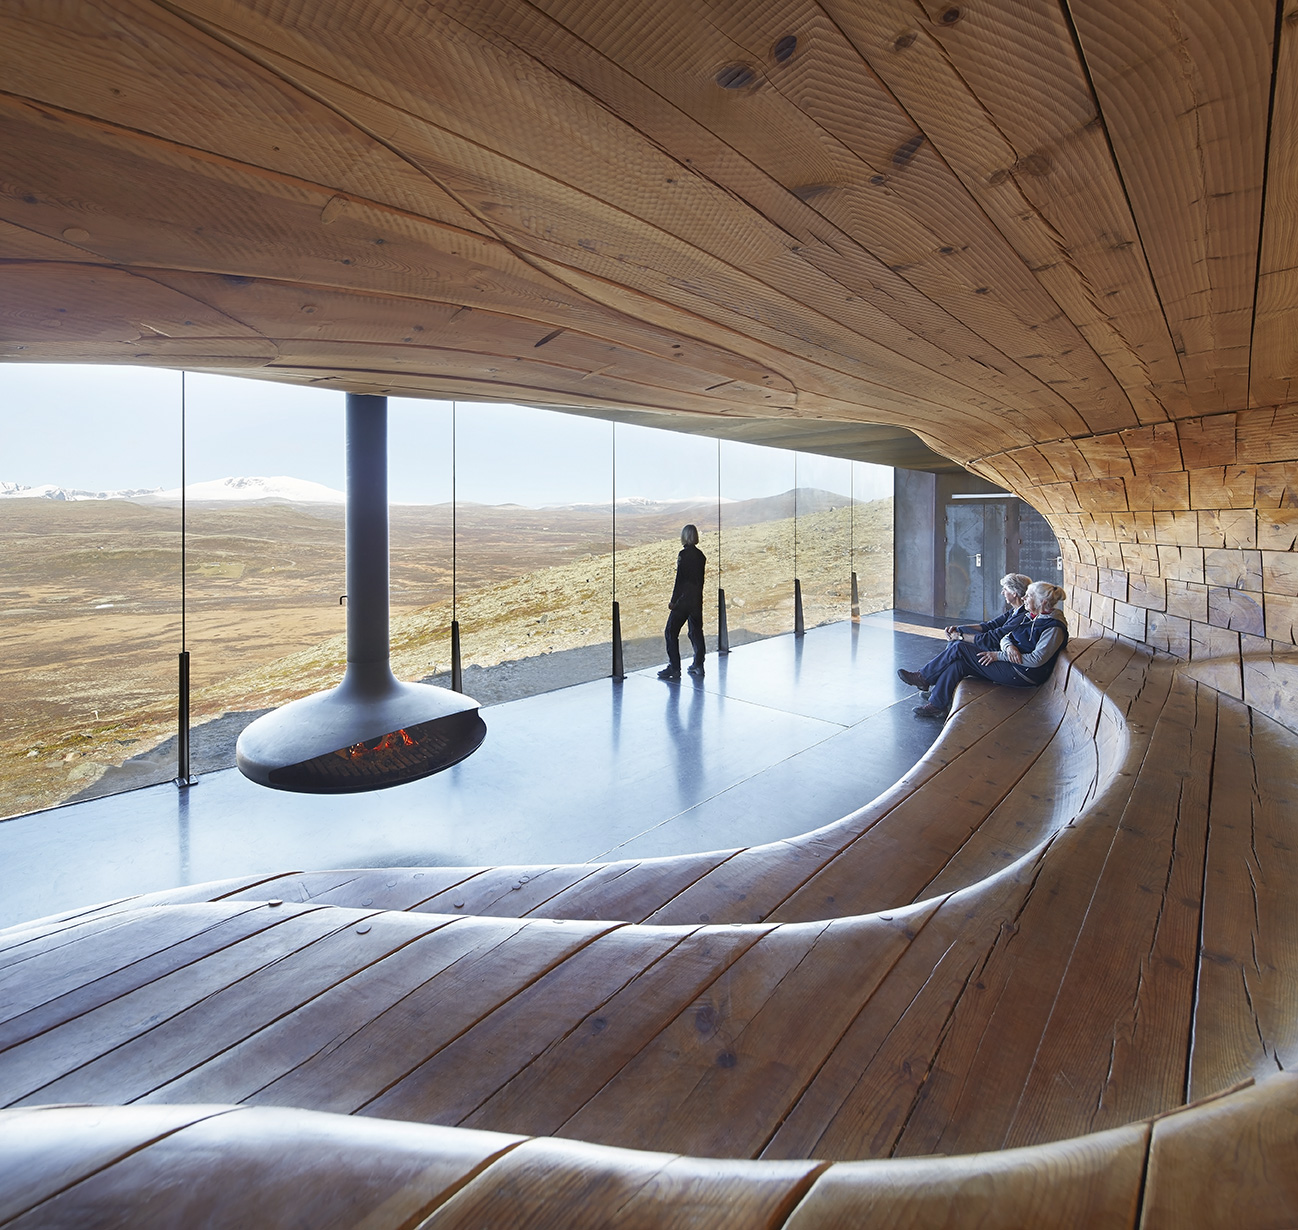 Norwegian Wild Reindeer Centre Pavilion further 965a as well Jewelry besides Alexandria Police Department as well Desks Console Tables. on portfolio modern home design